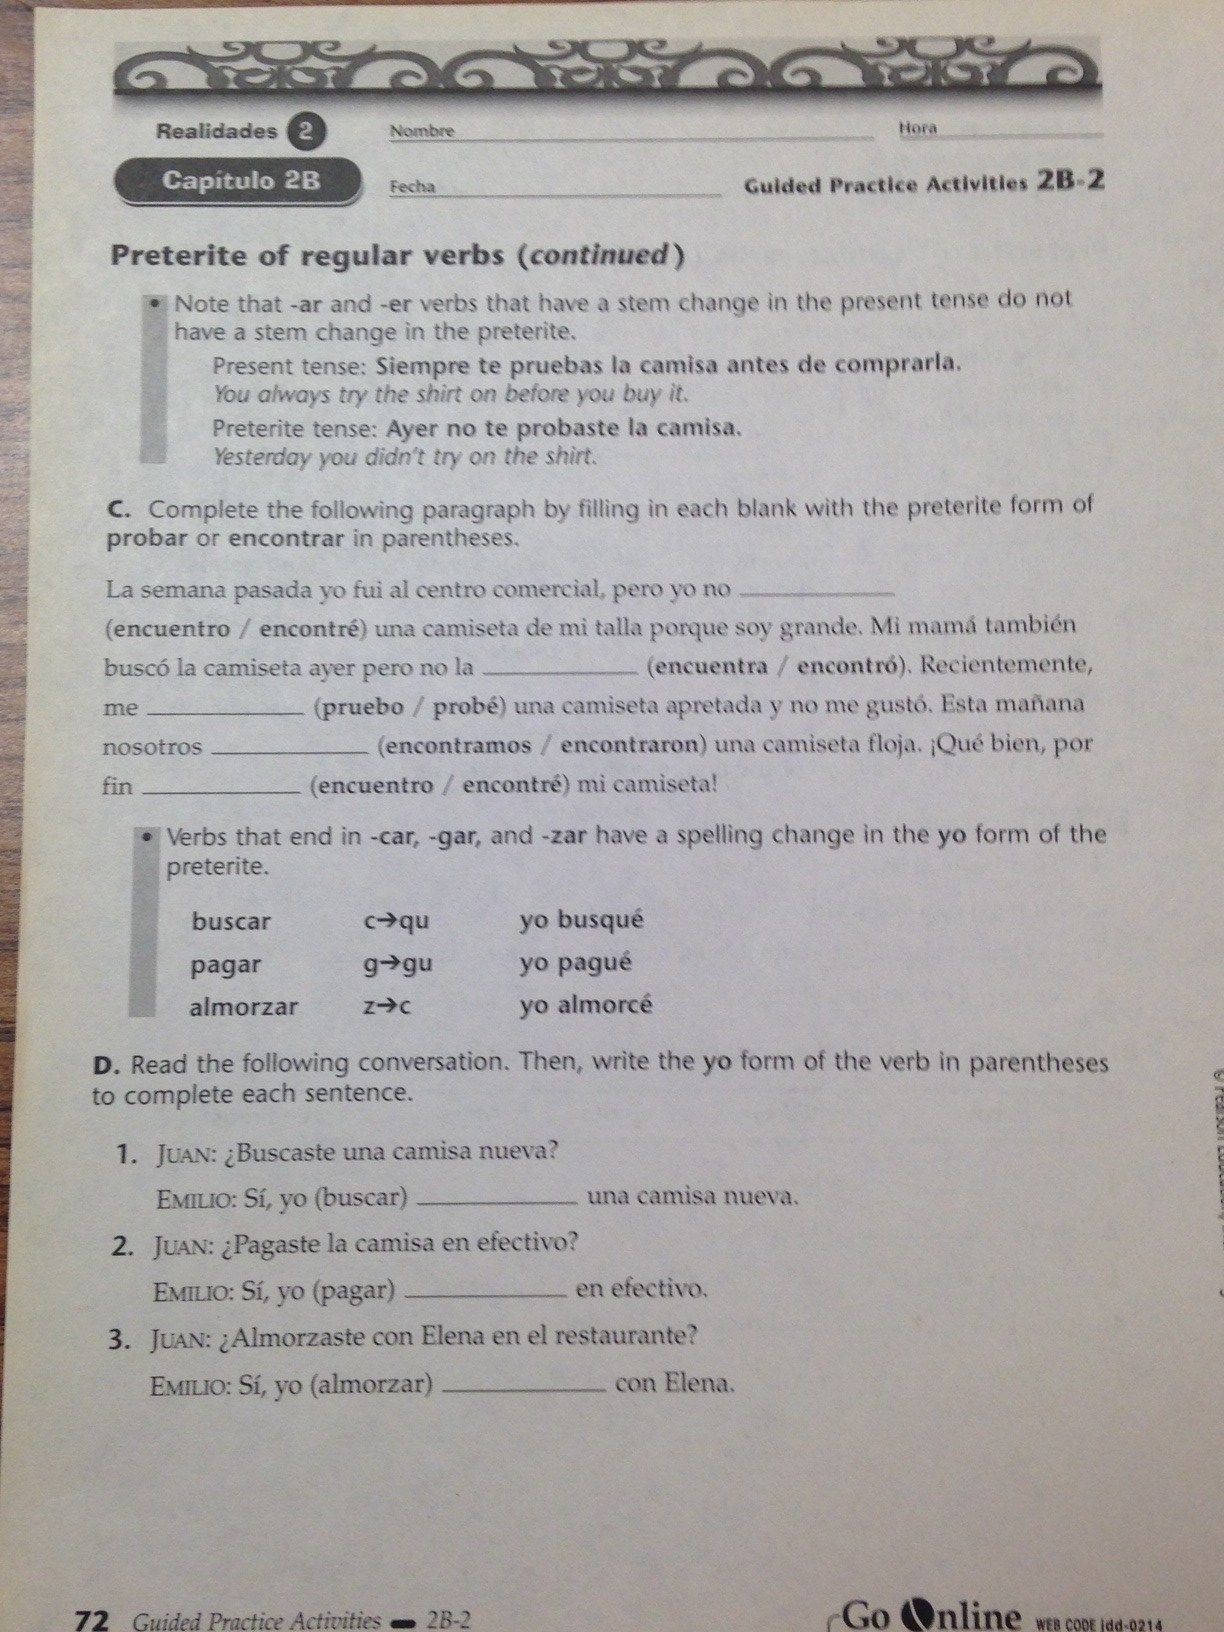 realidades 1 guided practice activities answer key 6b